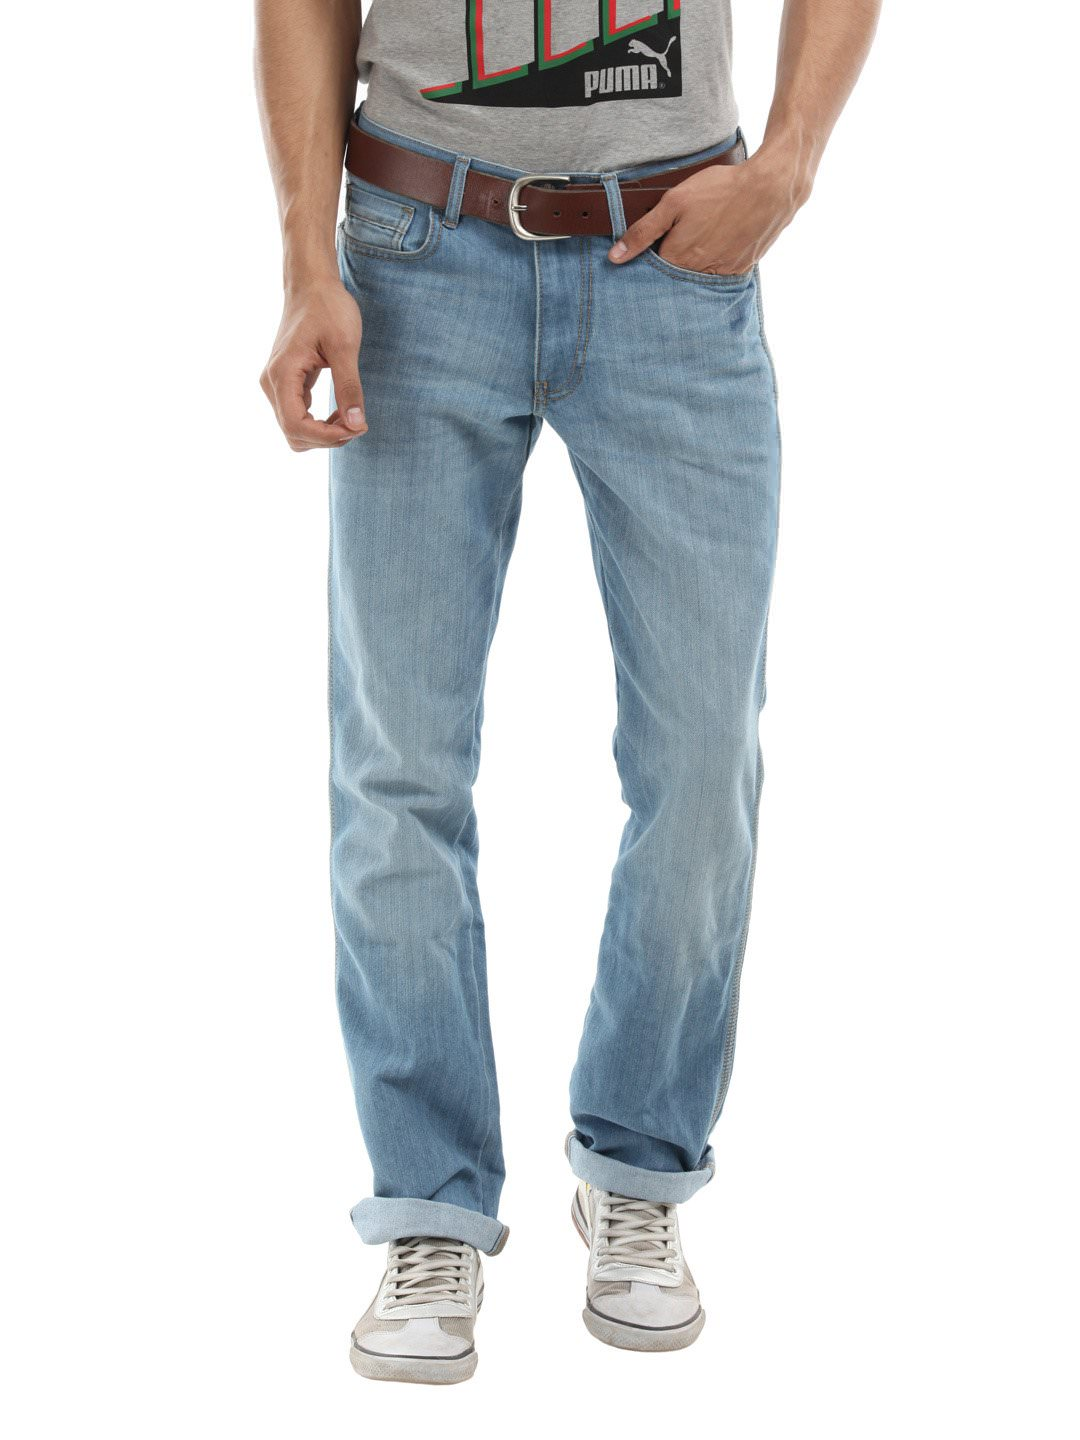 Dec 30,  · Contrast a dark blue jeans with a very faded light blue shirt and voila! Alternately, a light blue jeans with an ink colored shirt will do beautifully as well. Note that this look banks on contrast, so try not to have the same color jeans and shirt.